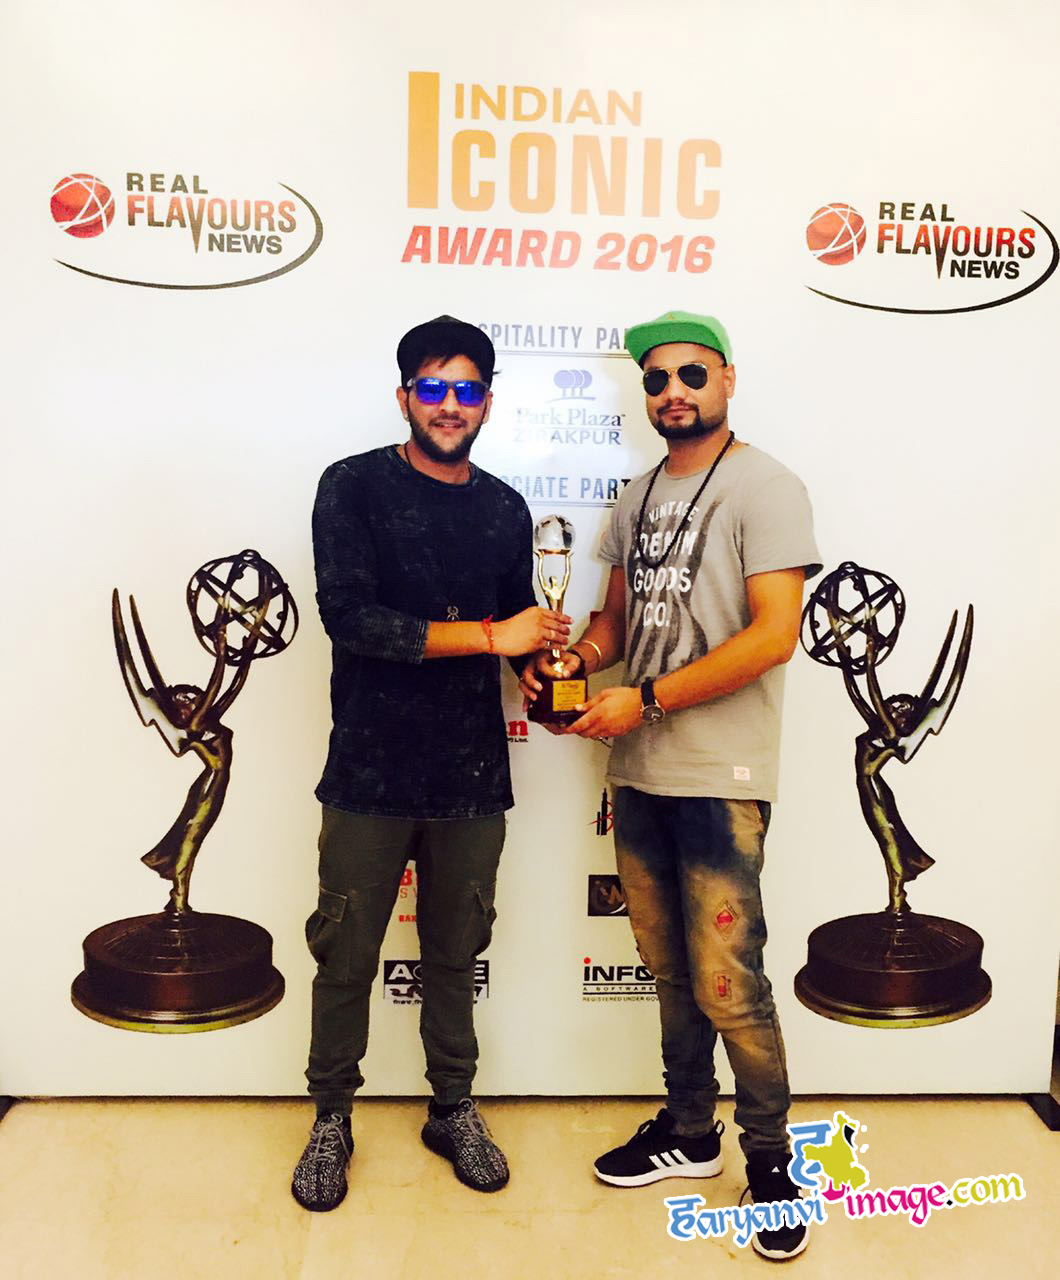 Indian Iconic Award 2016 Chandigarh